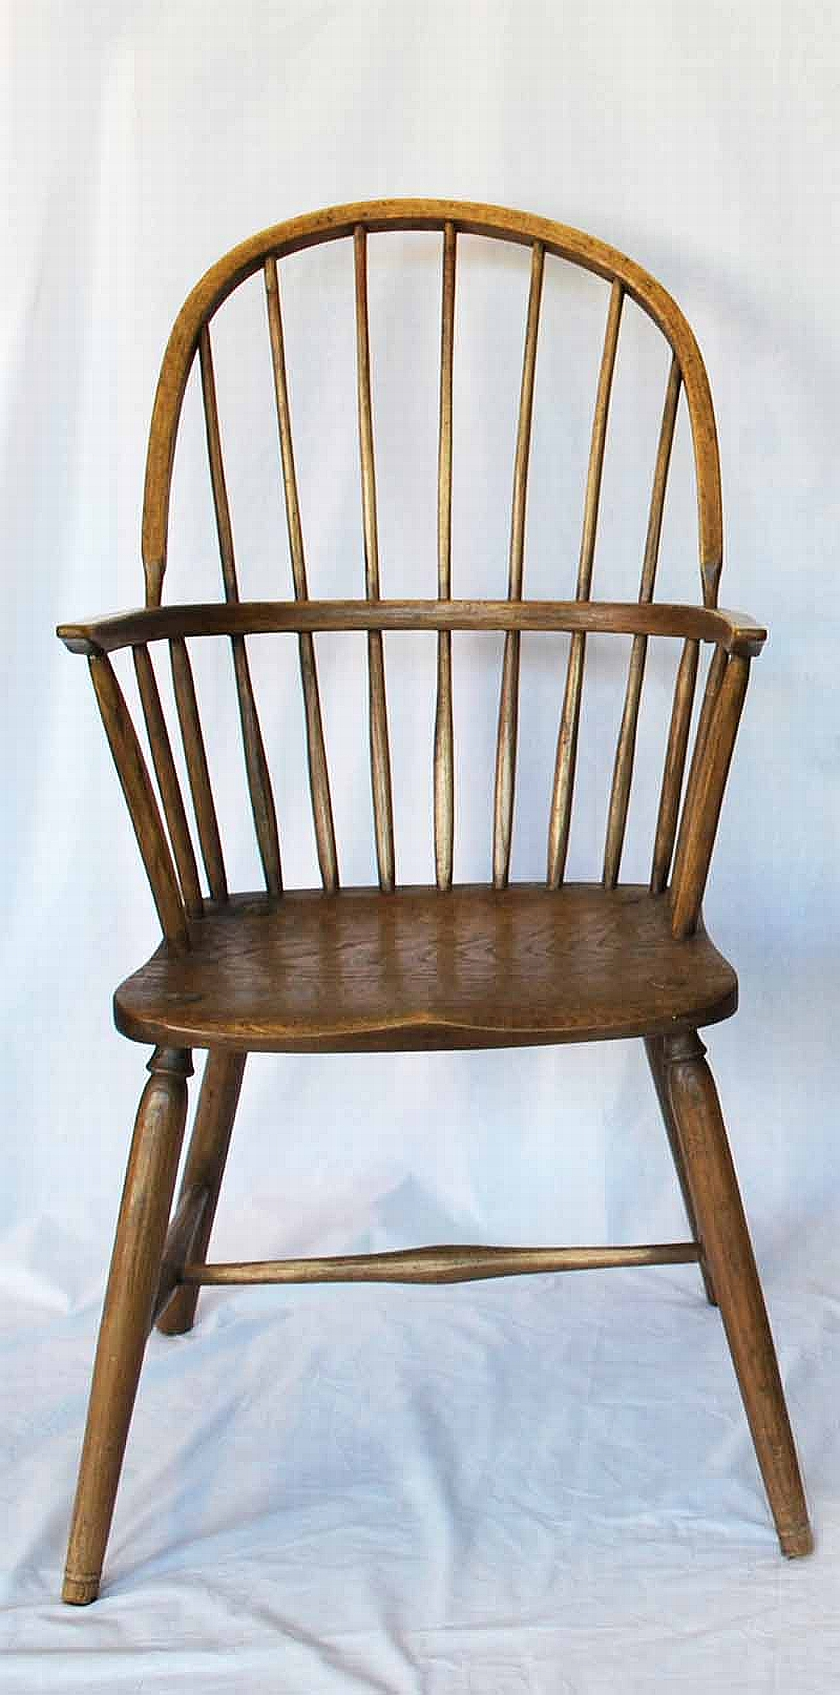 An oak high back windsor chair 19th century seating for All types of chairs